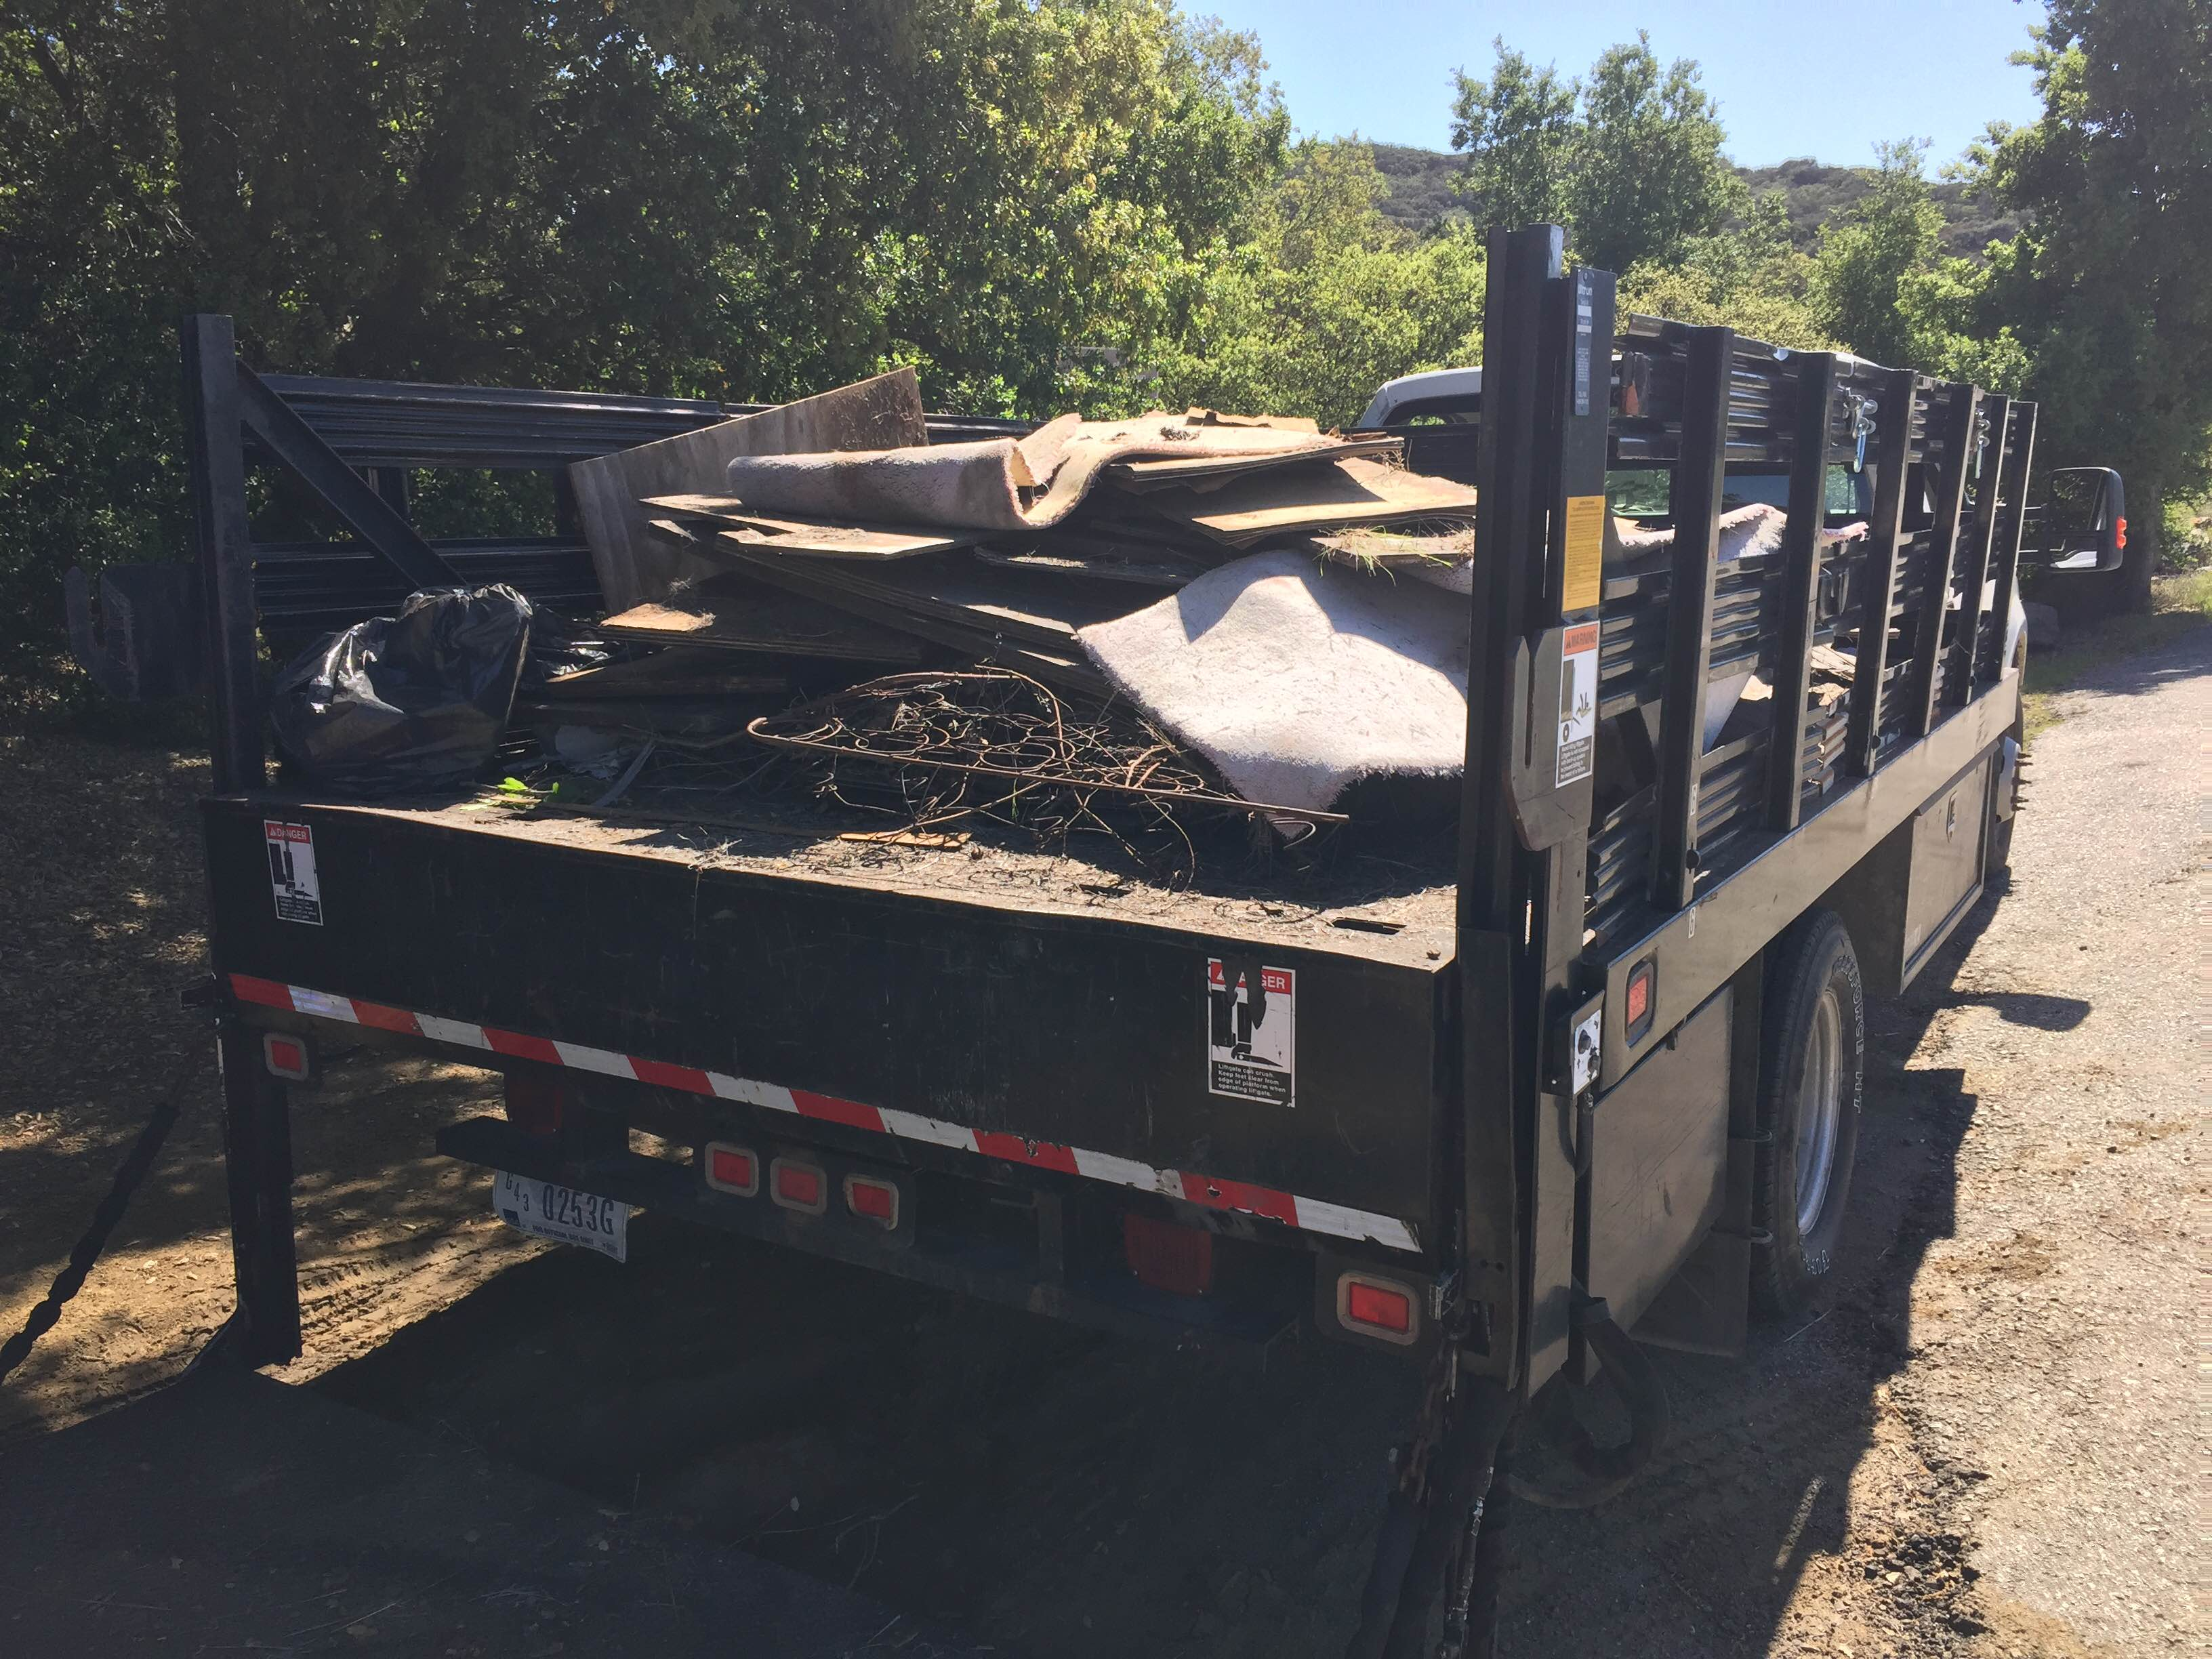 Plywood boards, carpeting, and other trash piled in a truck after the clean-up. (Photo: National Park Service)